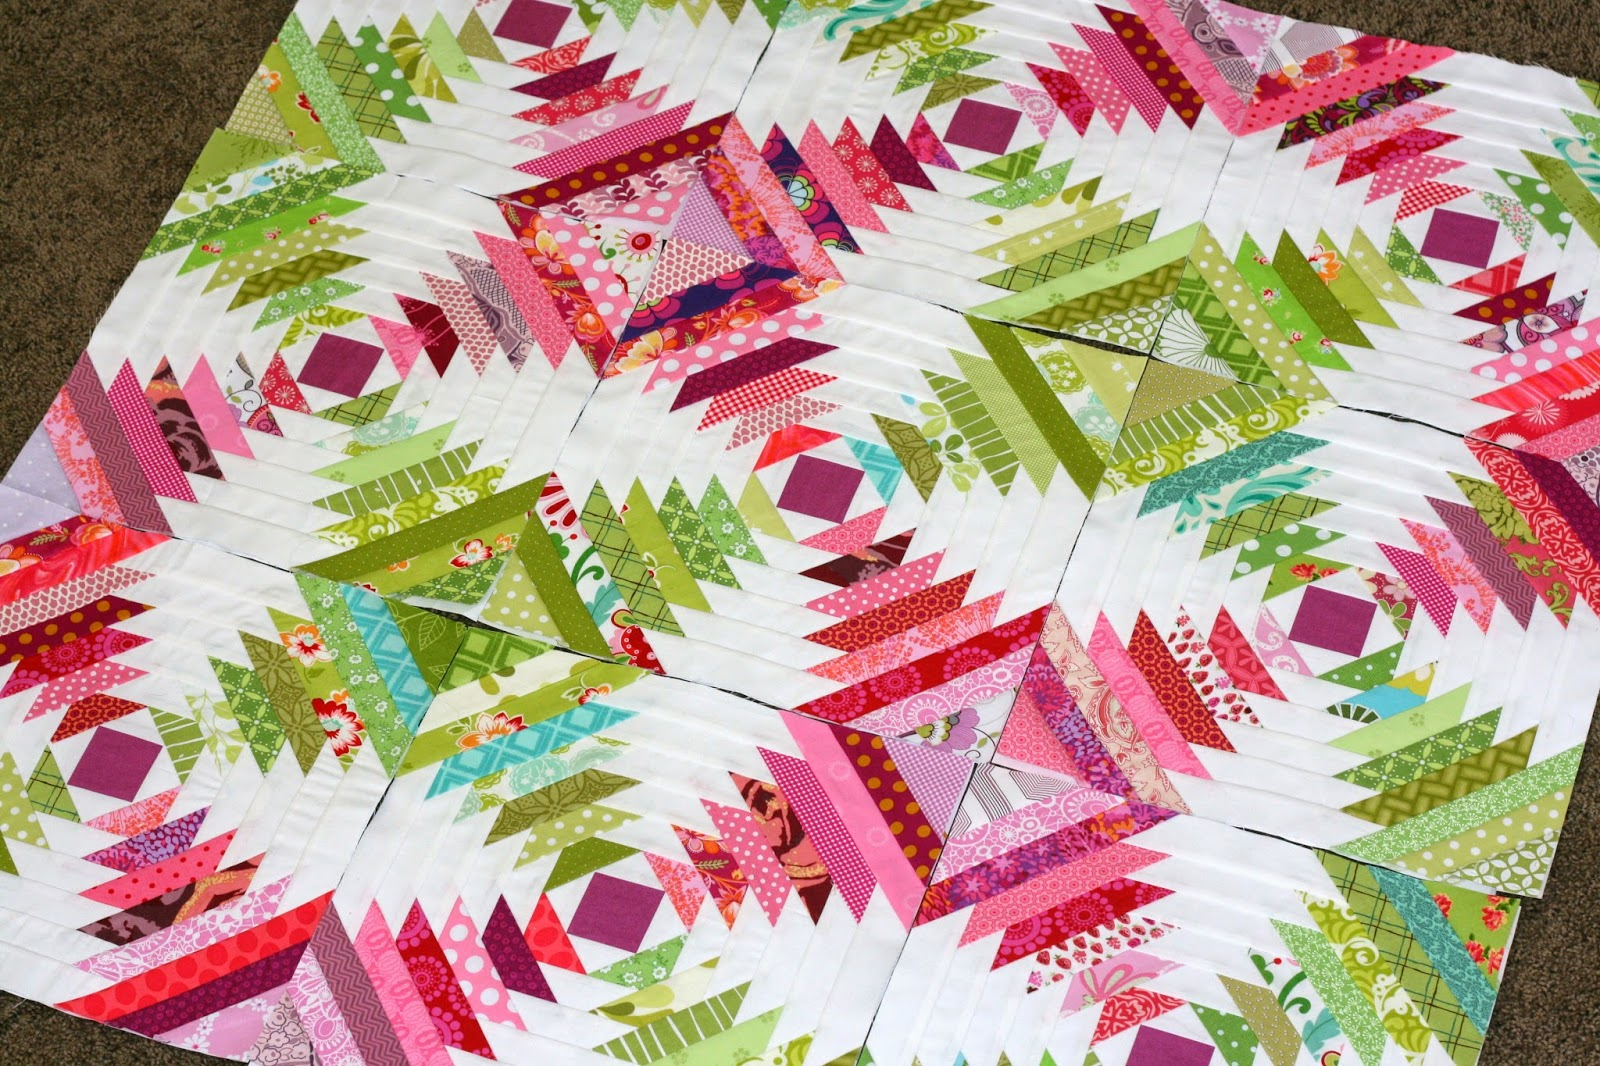 Gigis Thimble Pineapple Quilt Progress Patterns